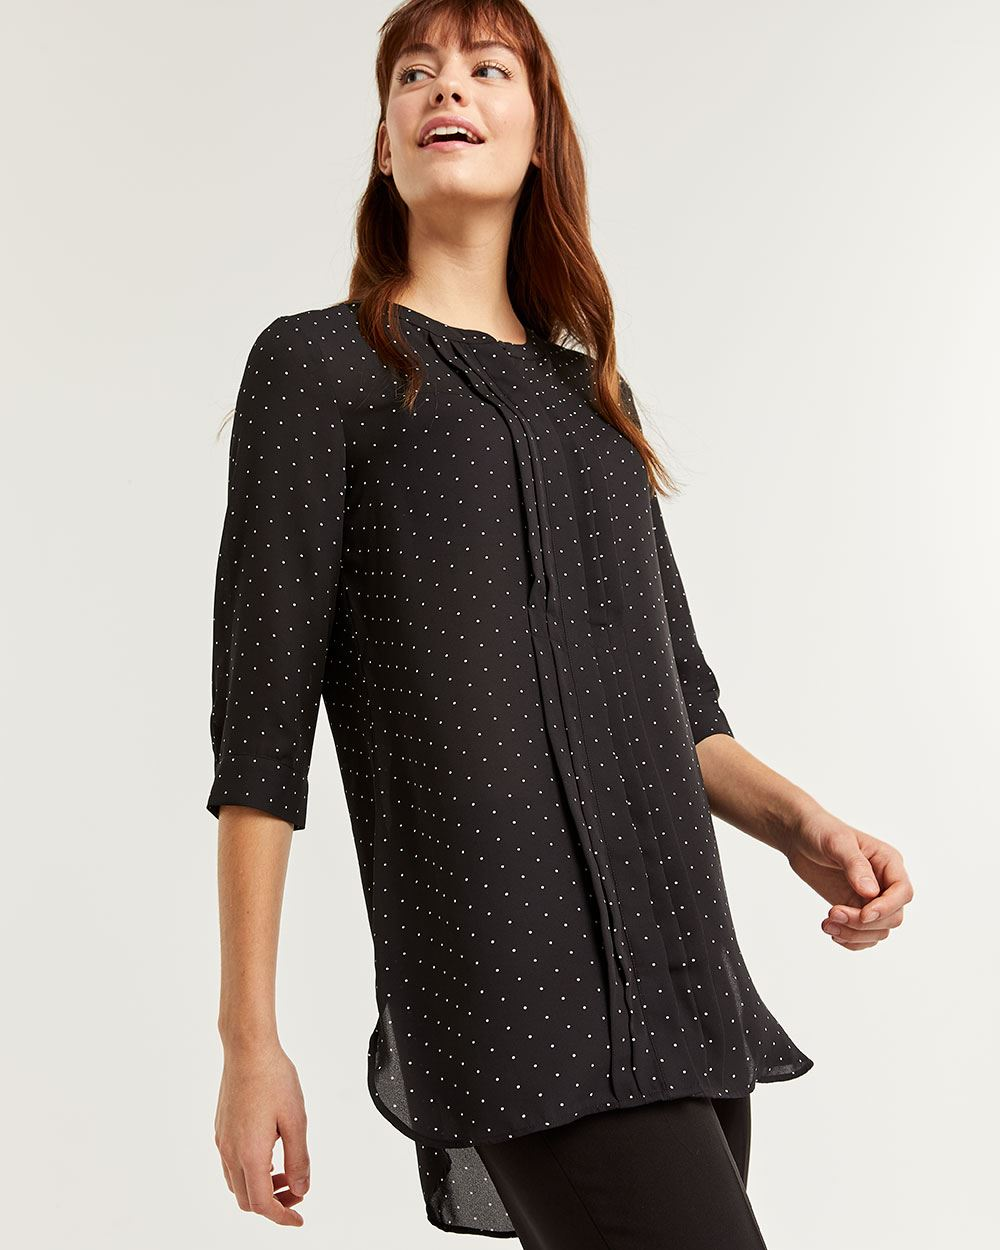 Mandarin Collar Tunic Shirt with Front Pleats